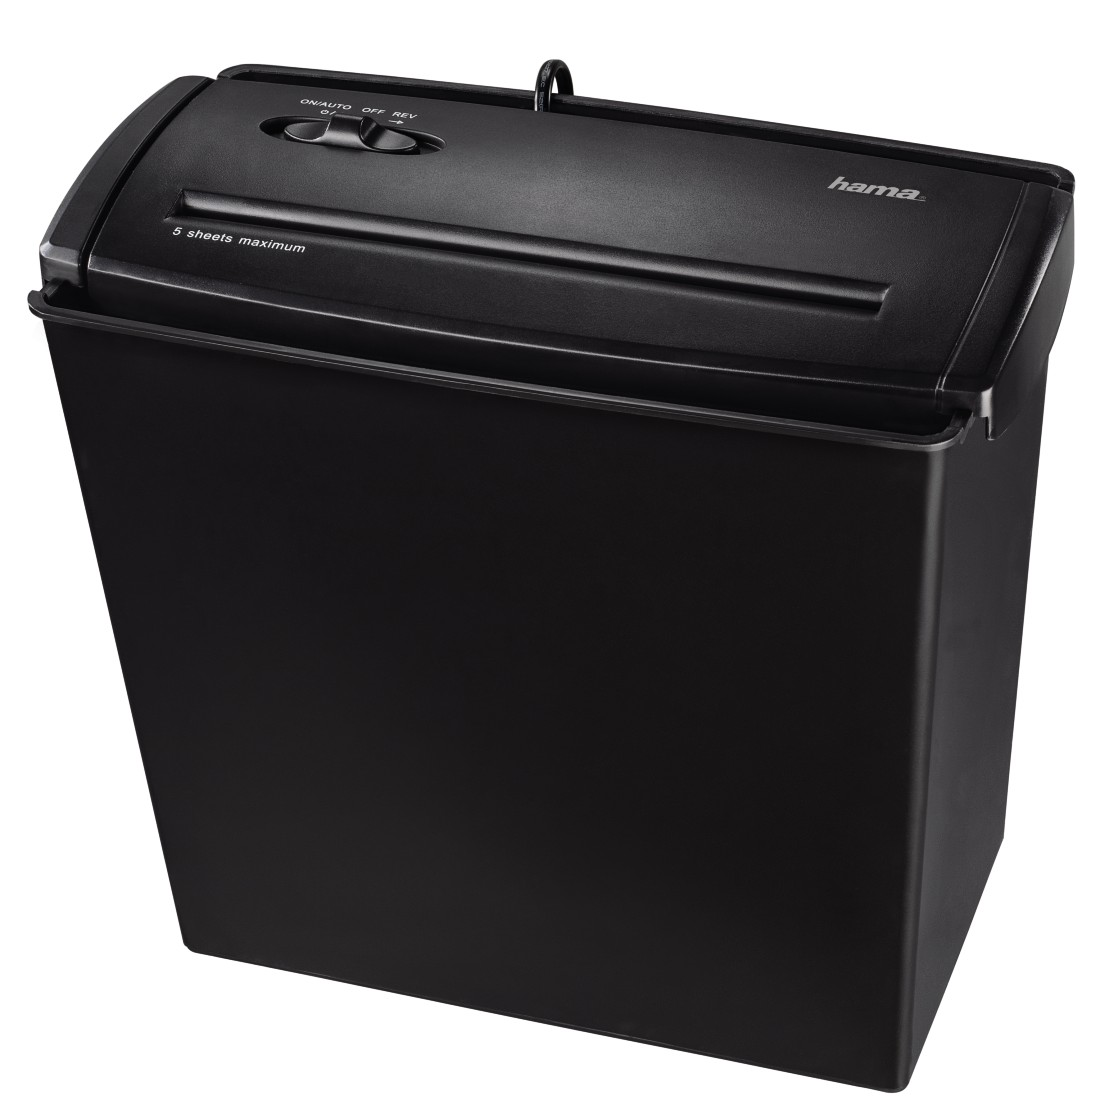 abx2 High-Res Image 2 - Hama, Home S7 Shredder